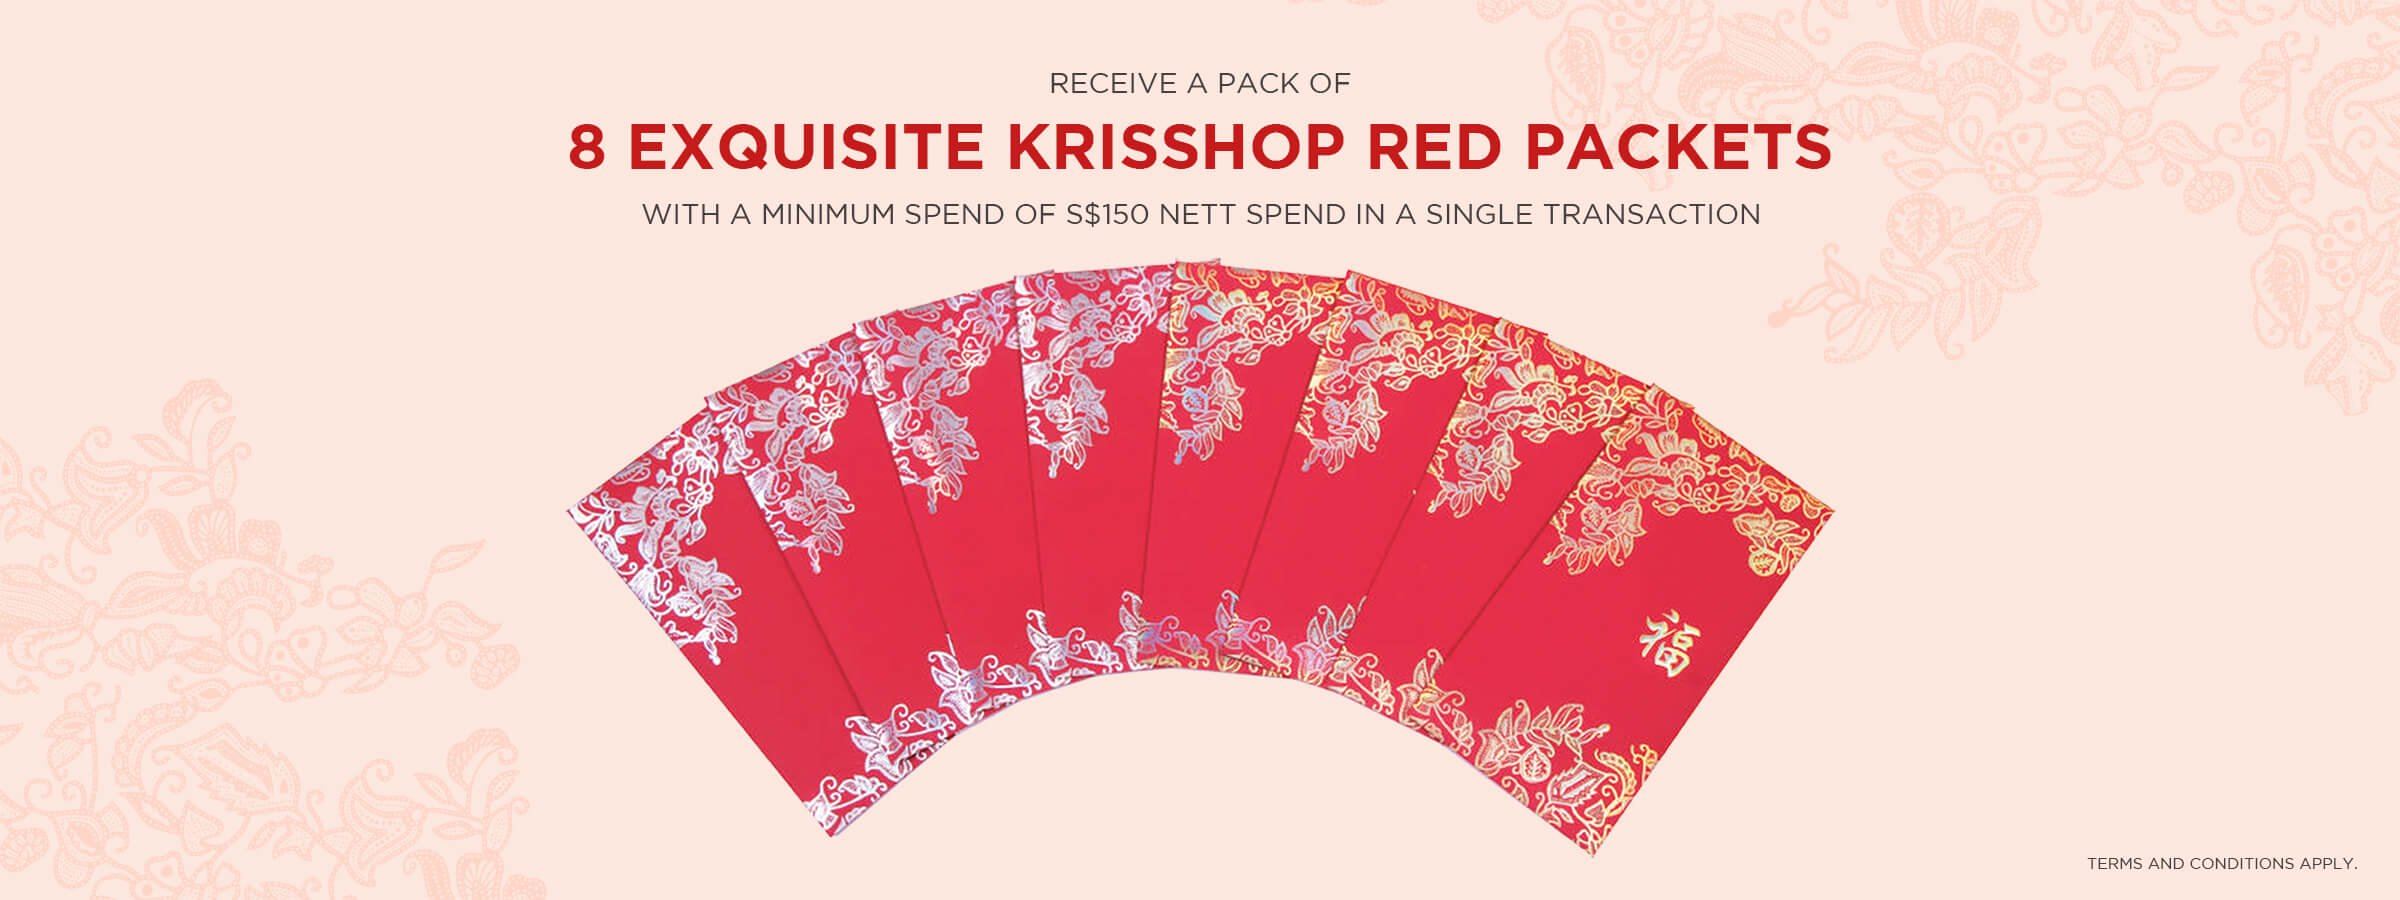 8 Exquisite KrisShop Red Packets